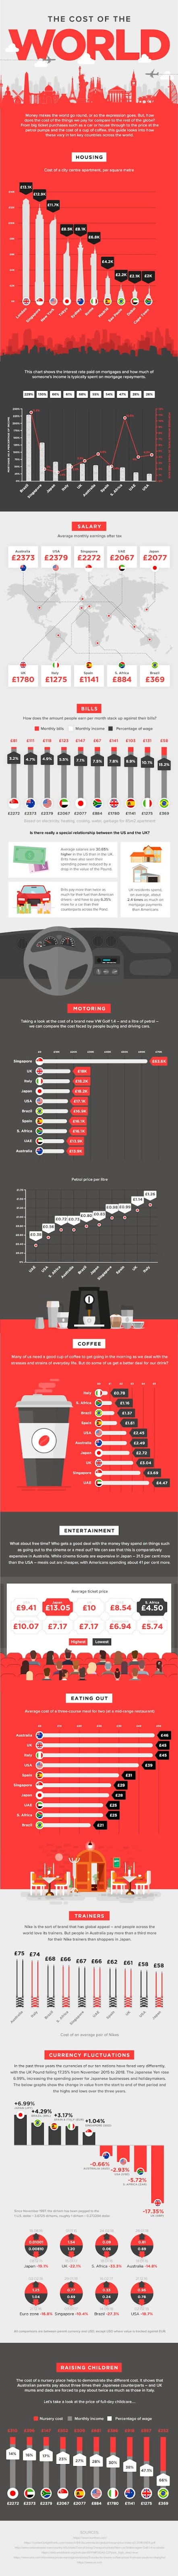 Cost of Living Around the World Compared - Infographic